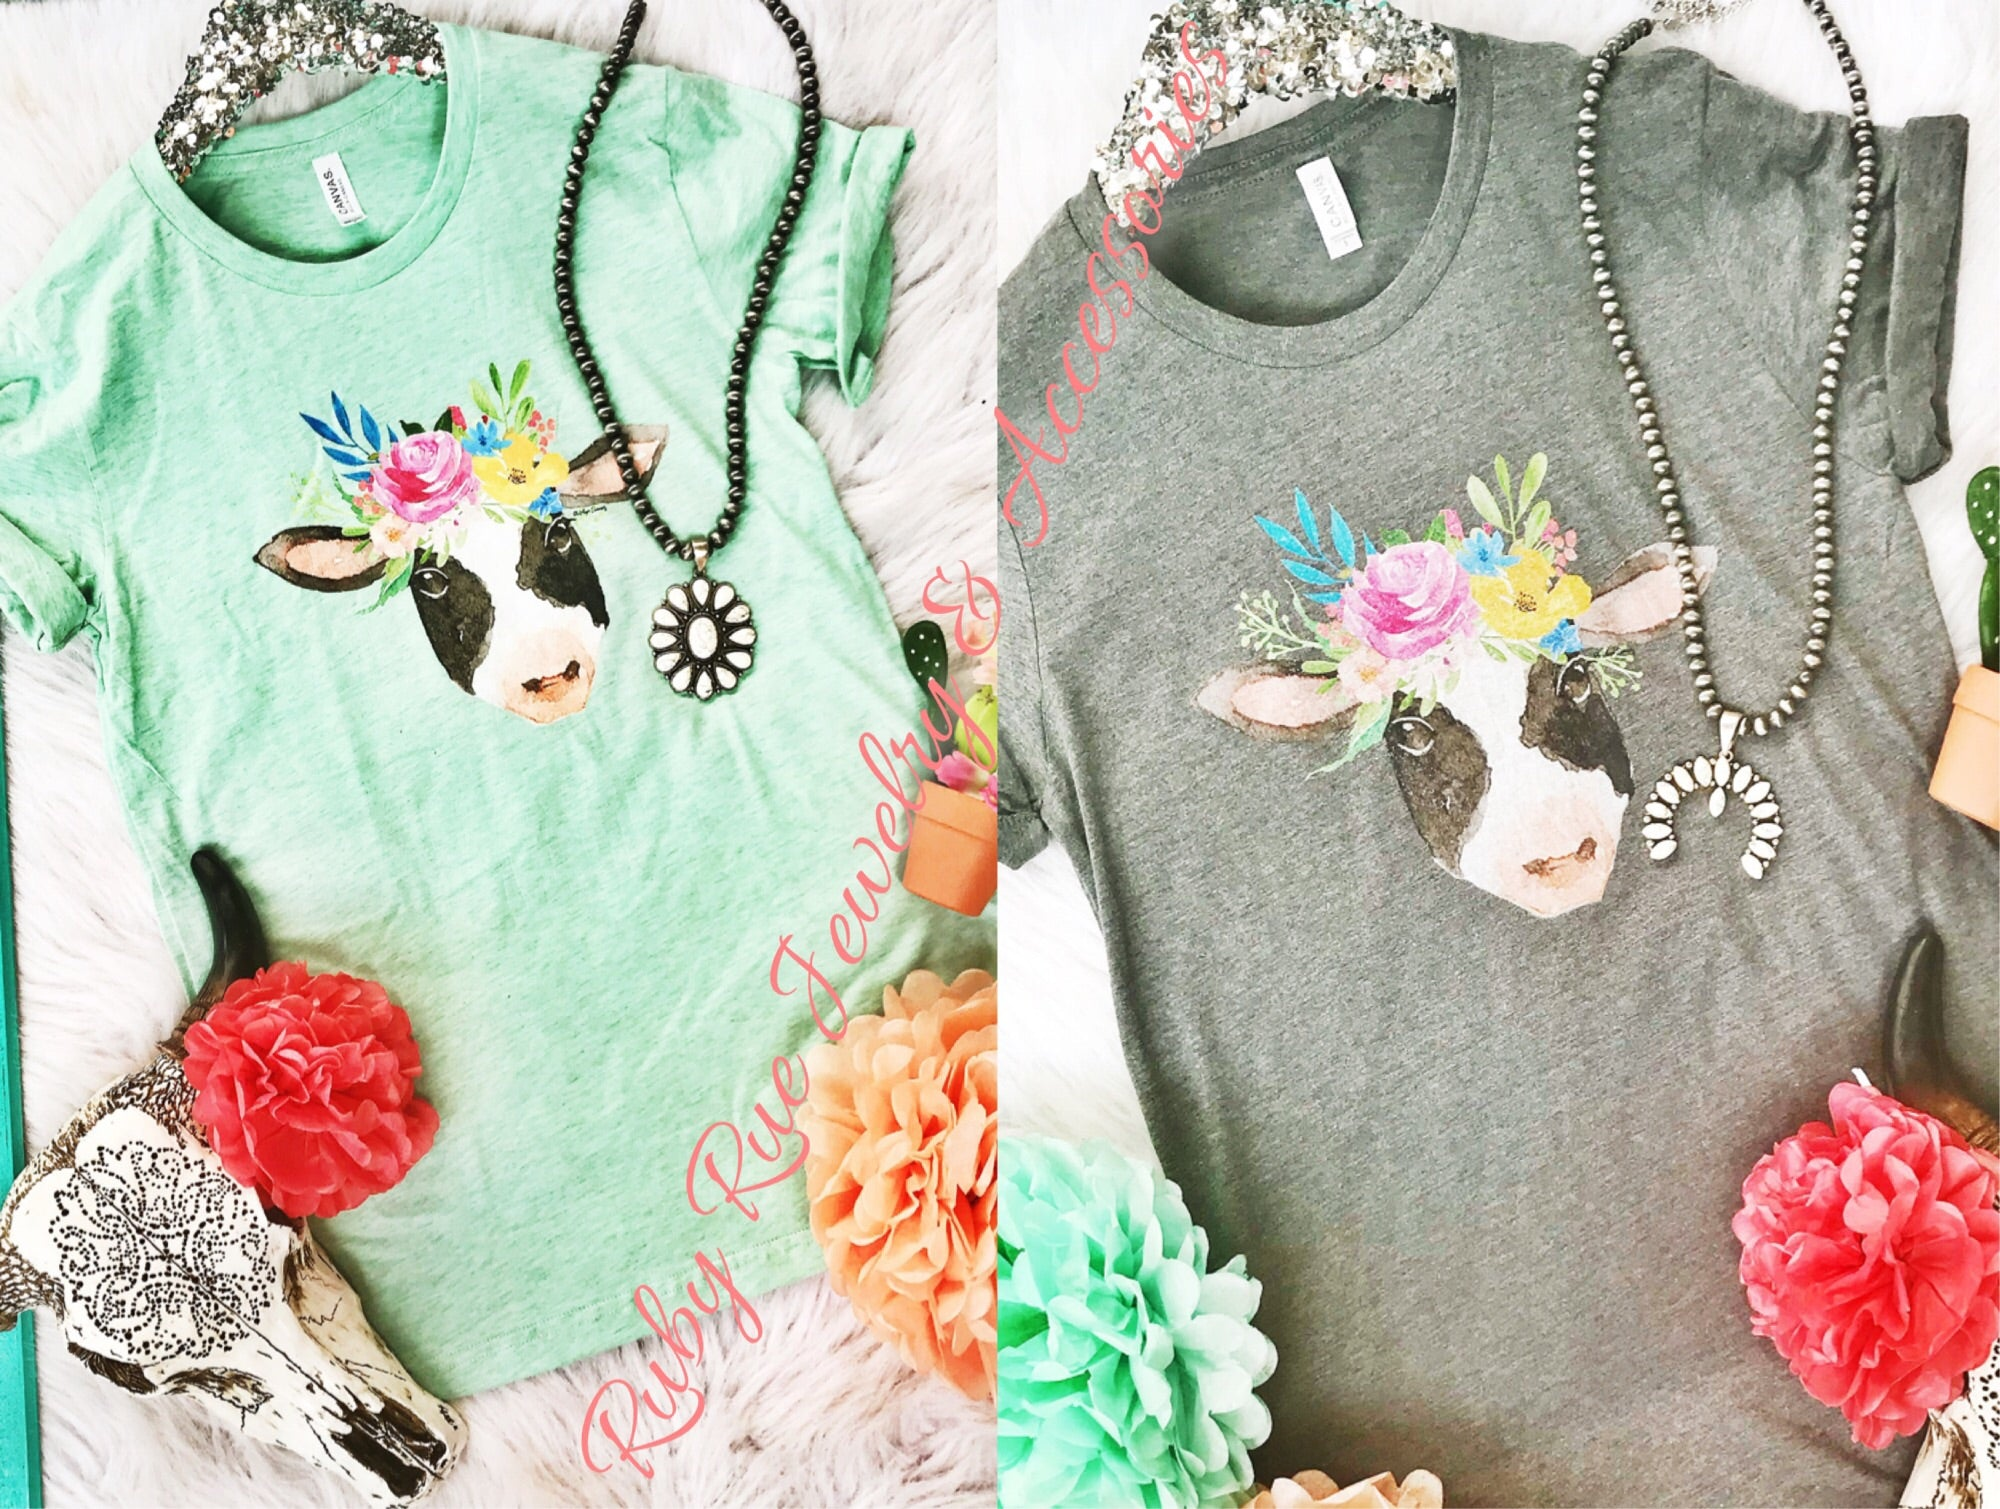 Miss Betsy Cow Tee - Ruby Rue Jewelry & Accessories